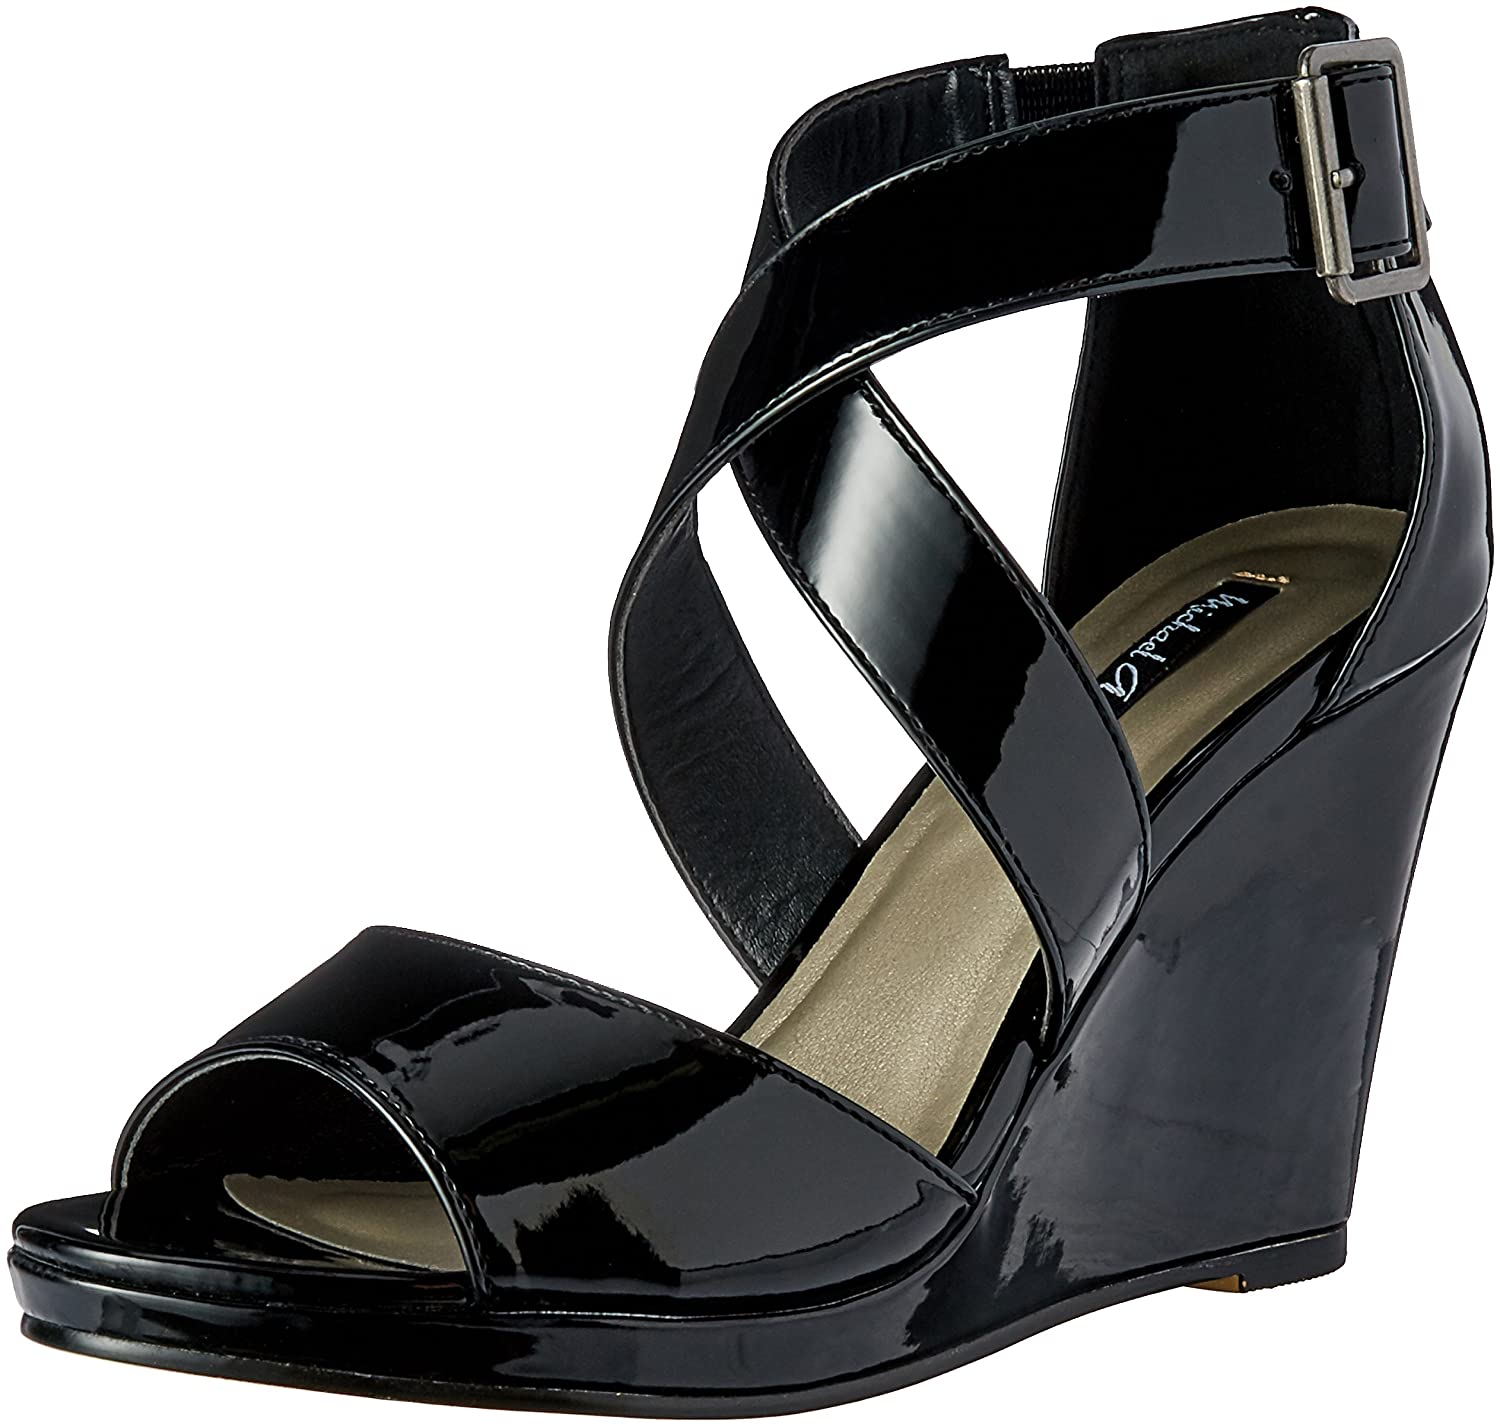 Michael Antonio Women's Amis-Pat Wedge Sandal B01N968MPB 6.5 B(M) US|Black